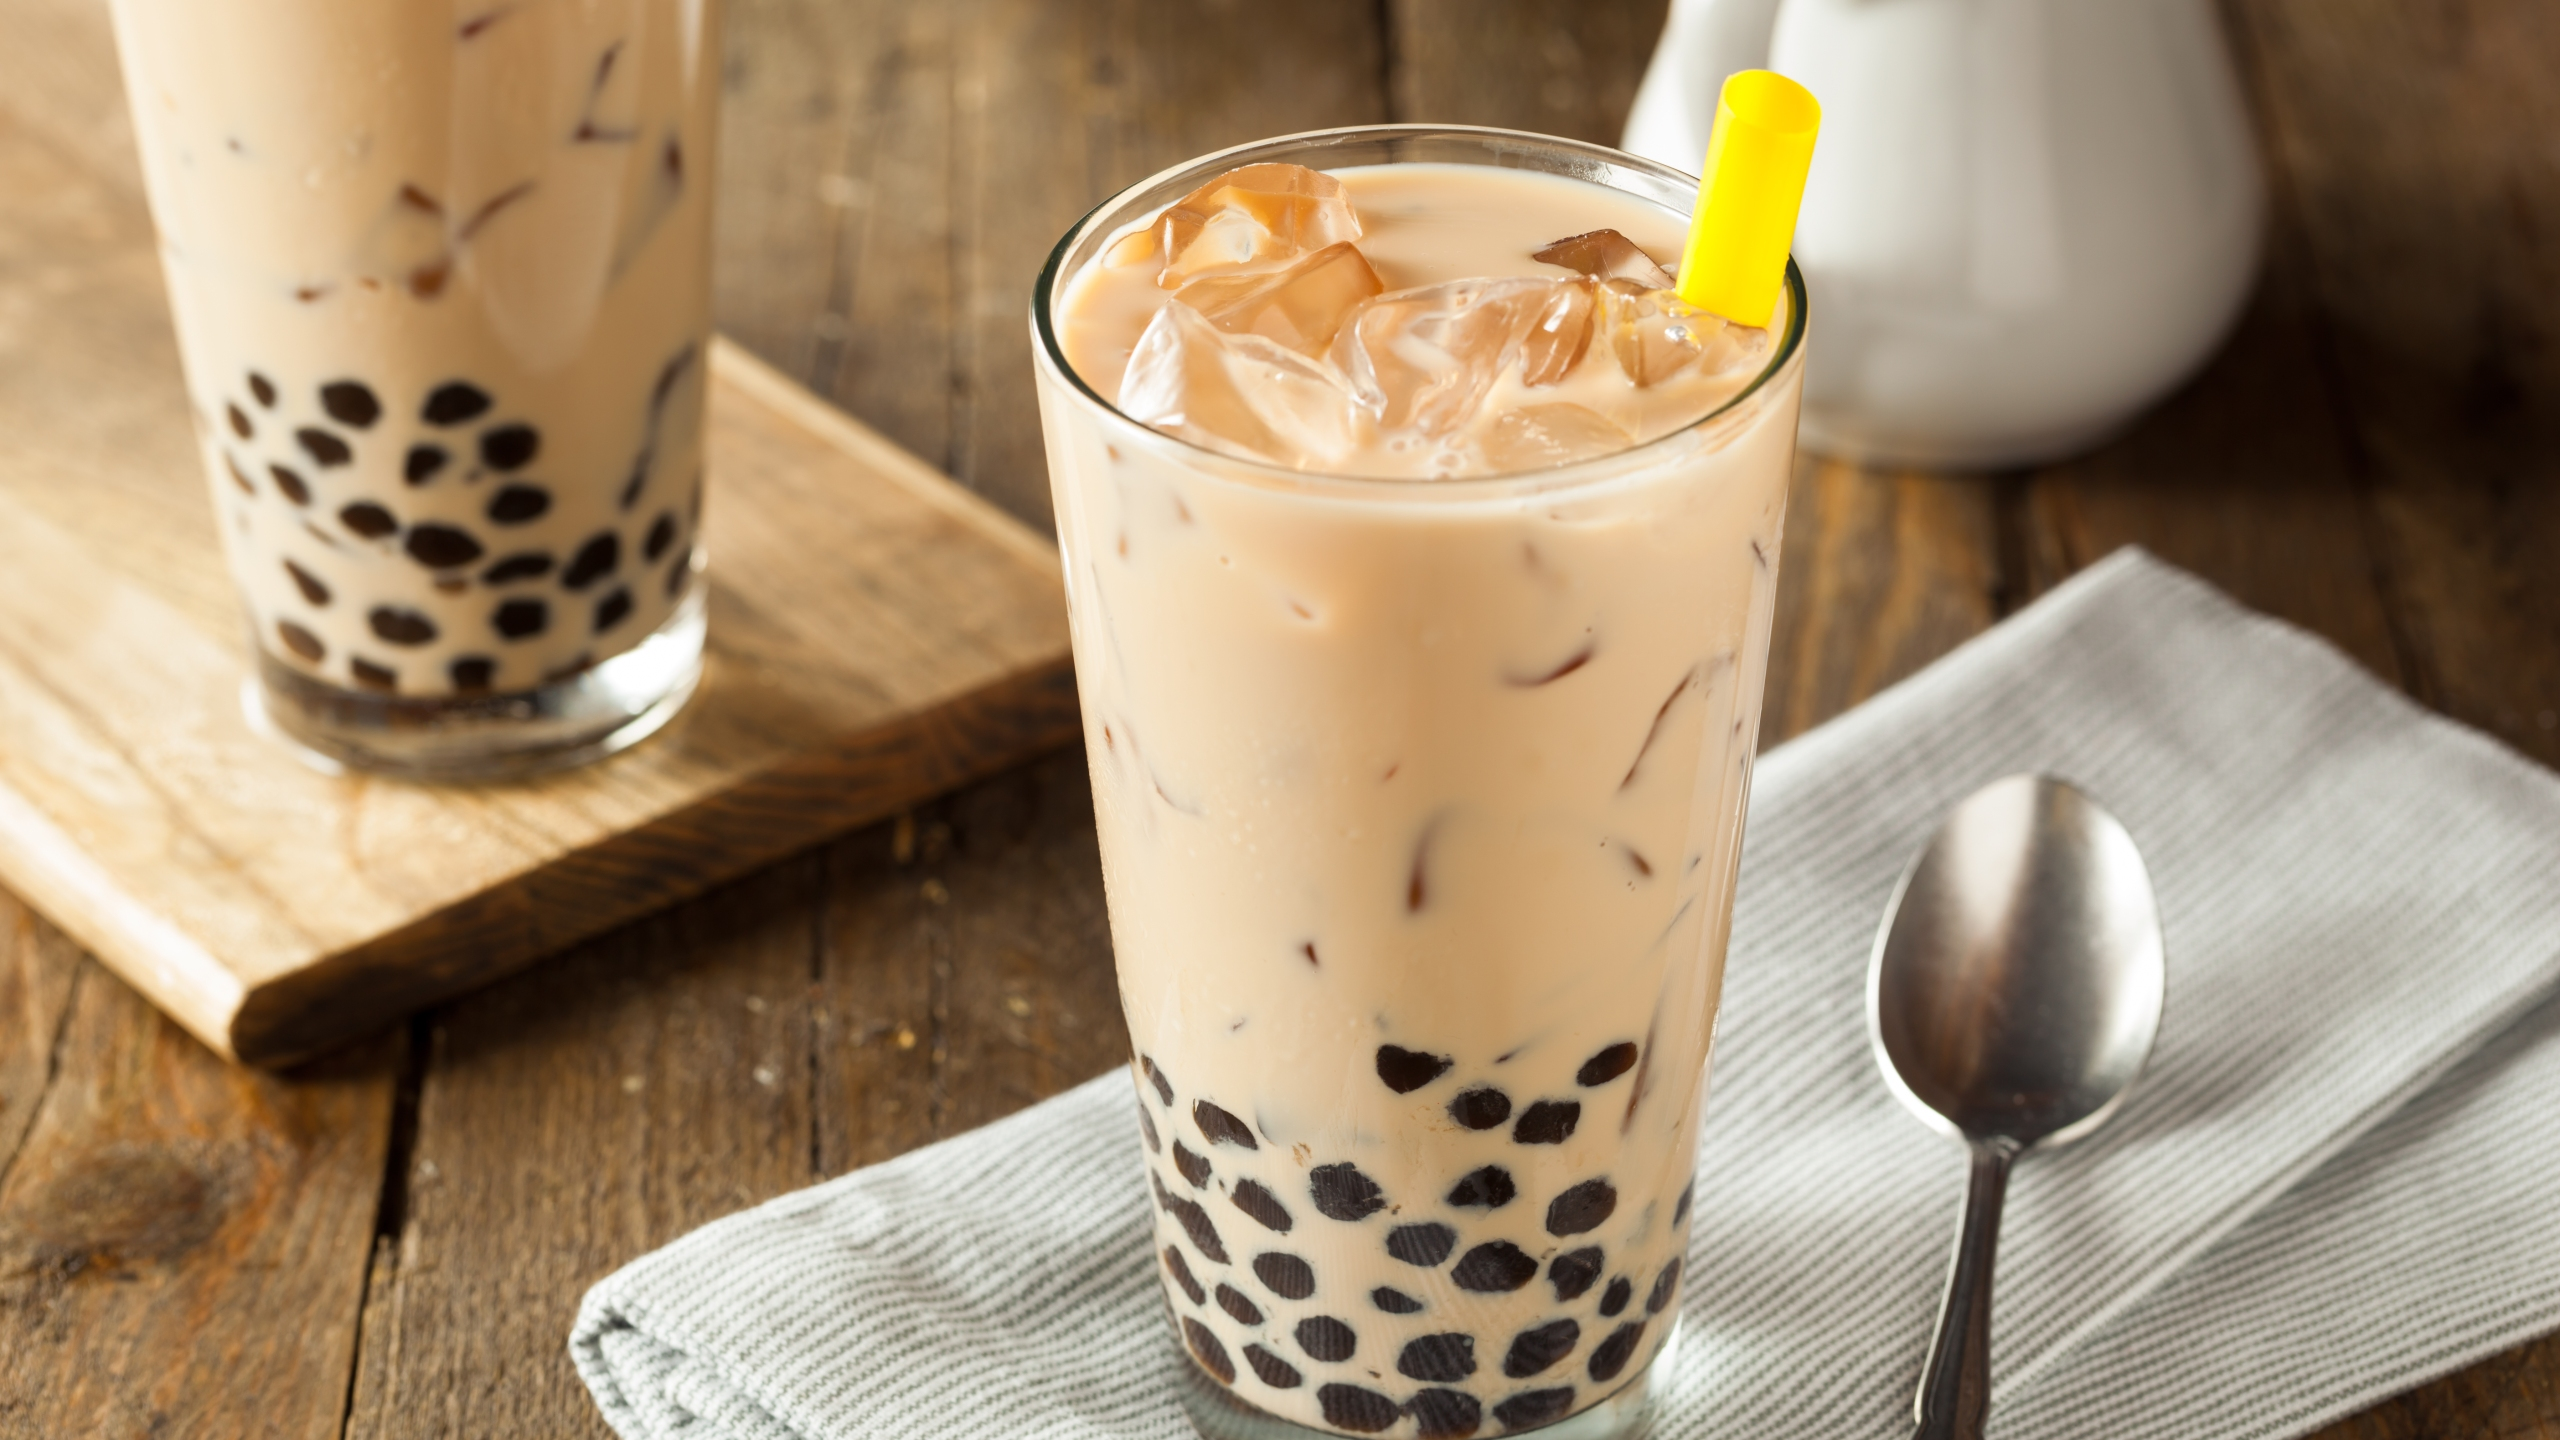 Homemade milk bubble tea with boba is seen in a file image. (iStock / Getty Images Plus)